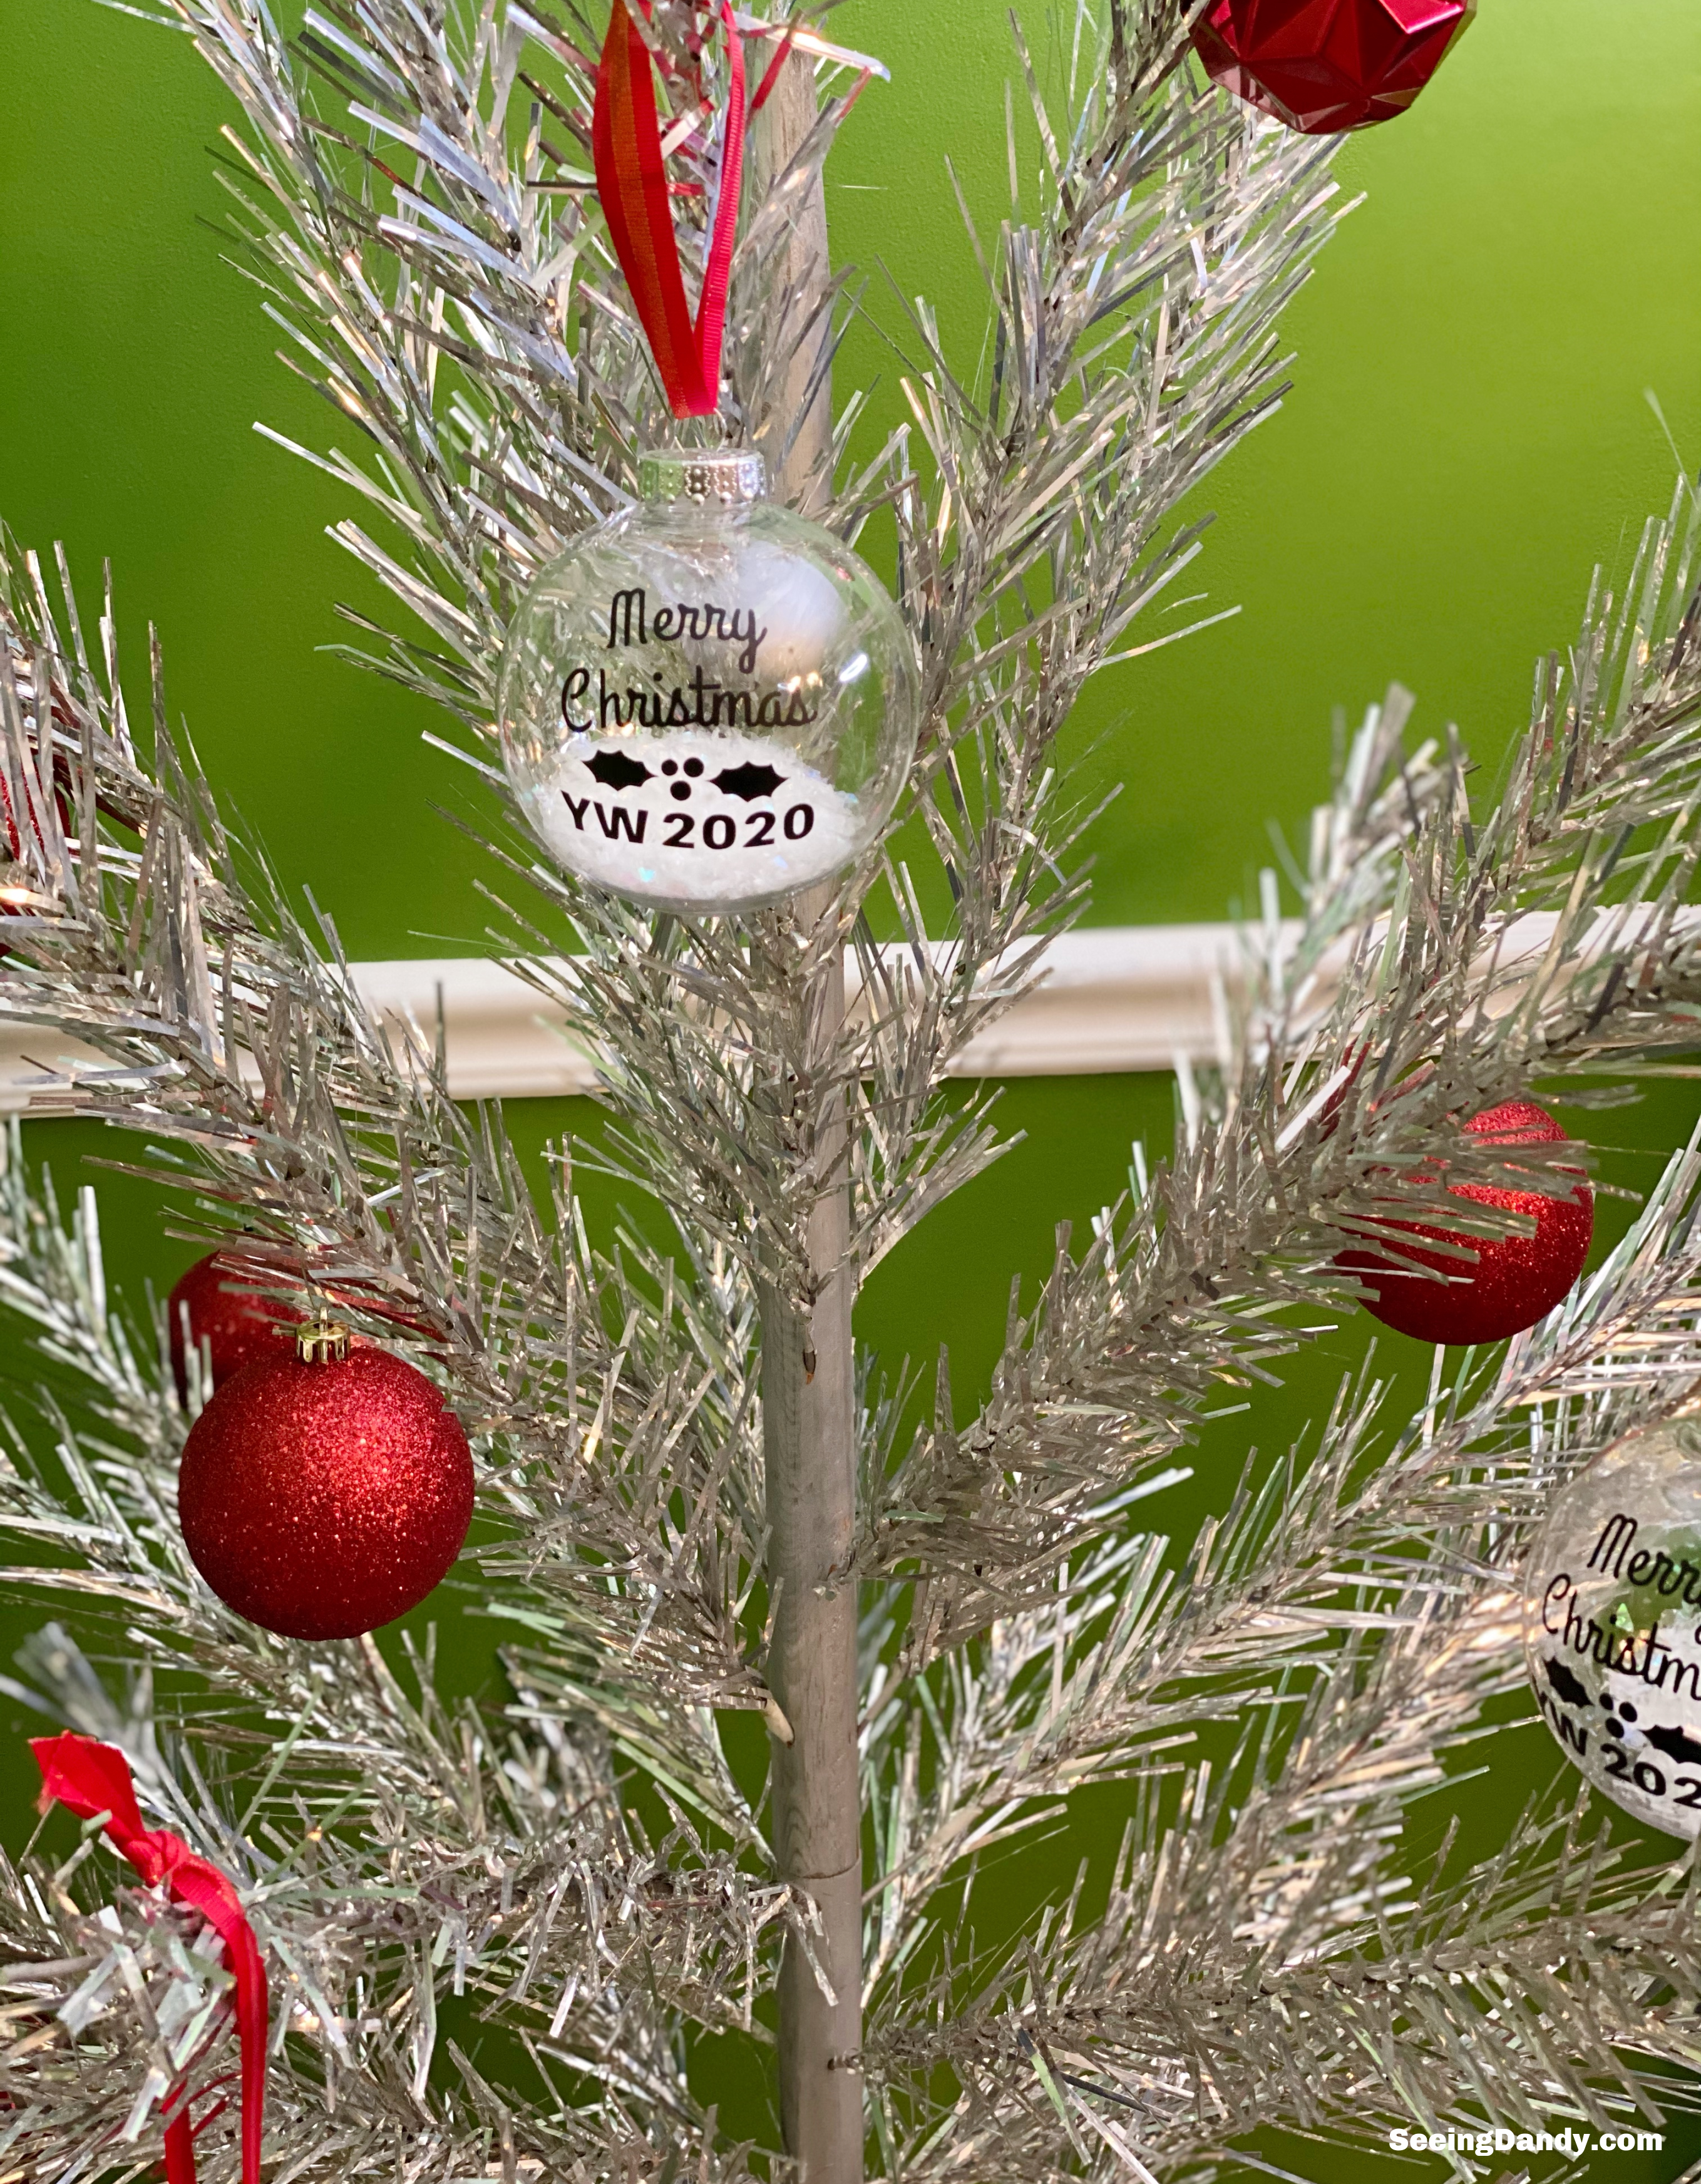 easy to make yw christmas ornament, diy christmas ornaments, clear plastic ball ornaments, merry christmas svg file, free svg file, tinsel tree, silver christmas tree, aluminum christmas tree, red shatter proof ornaments, vintage christmas tree, yw crafts